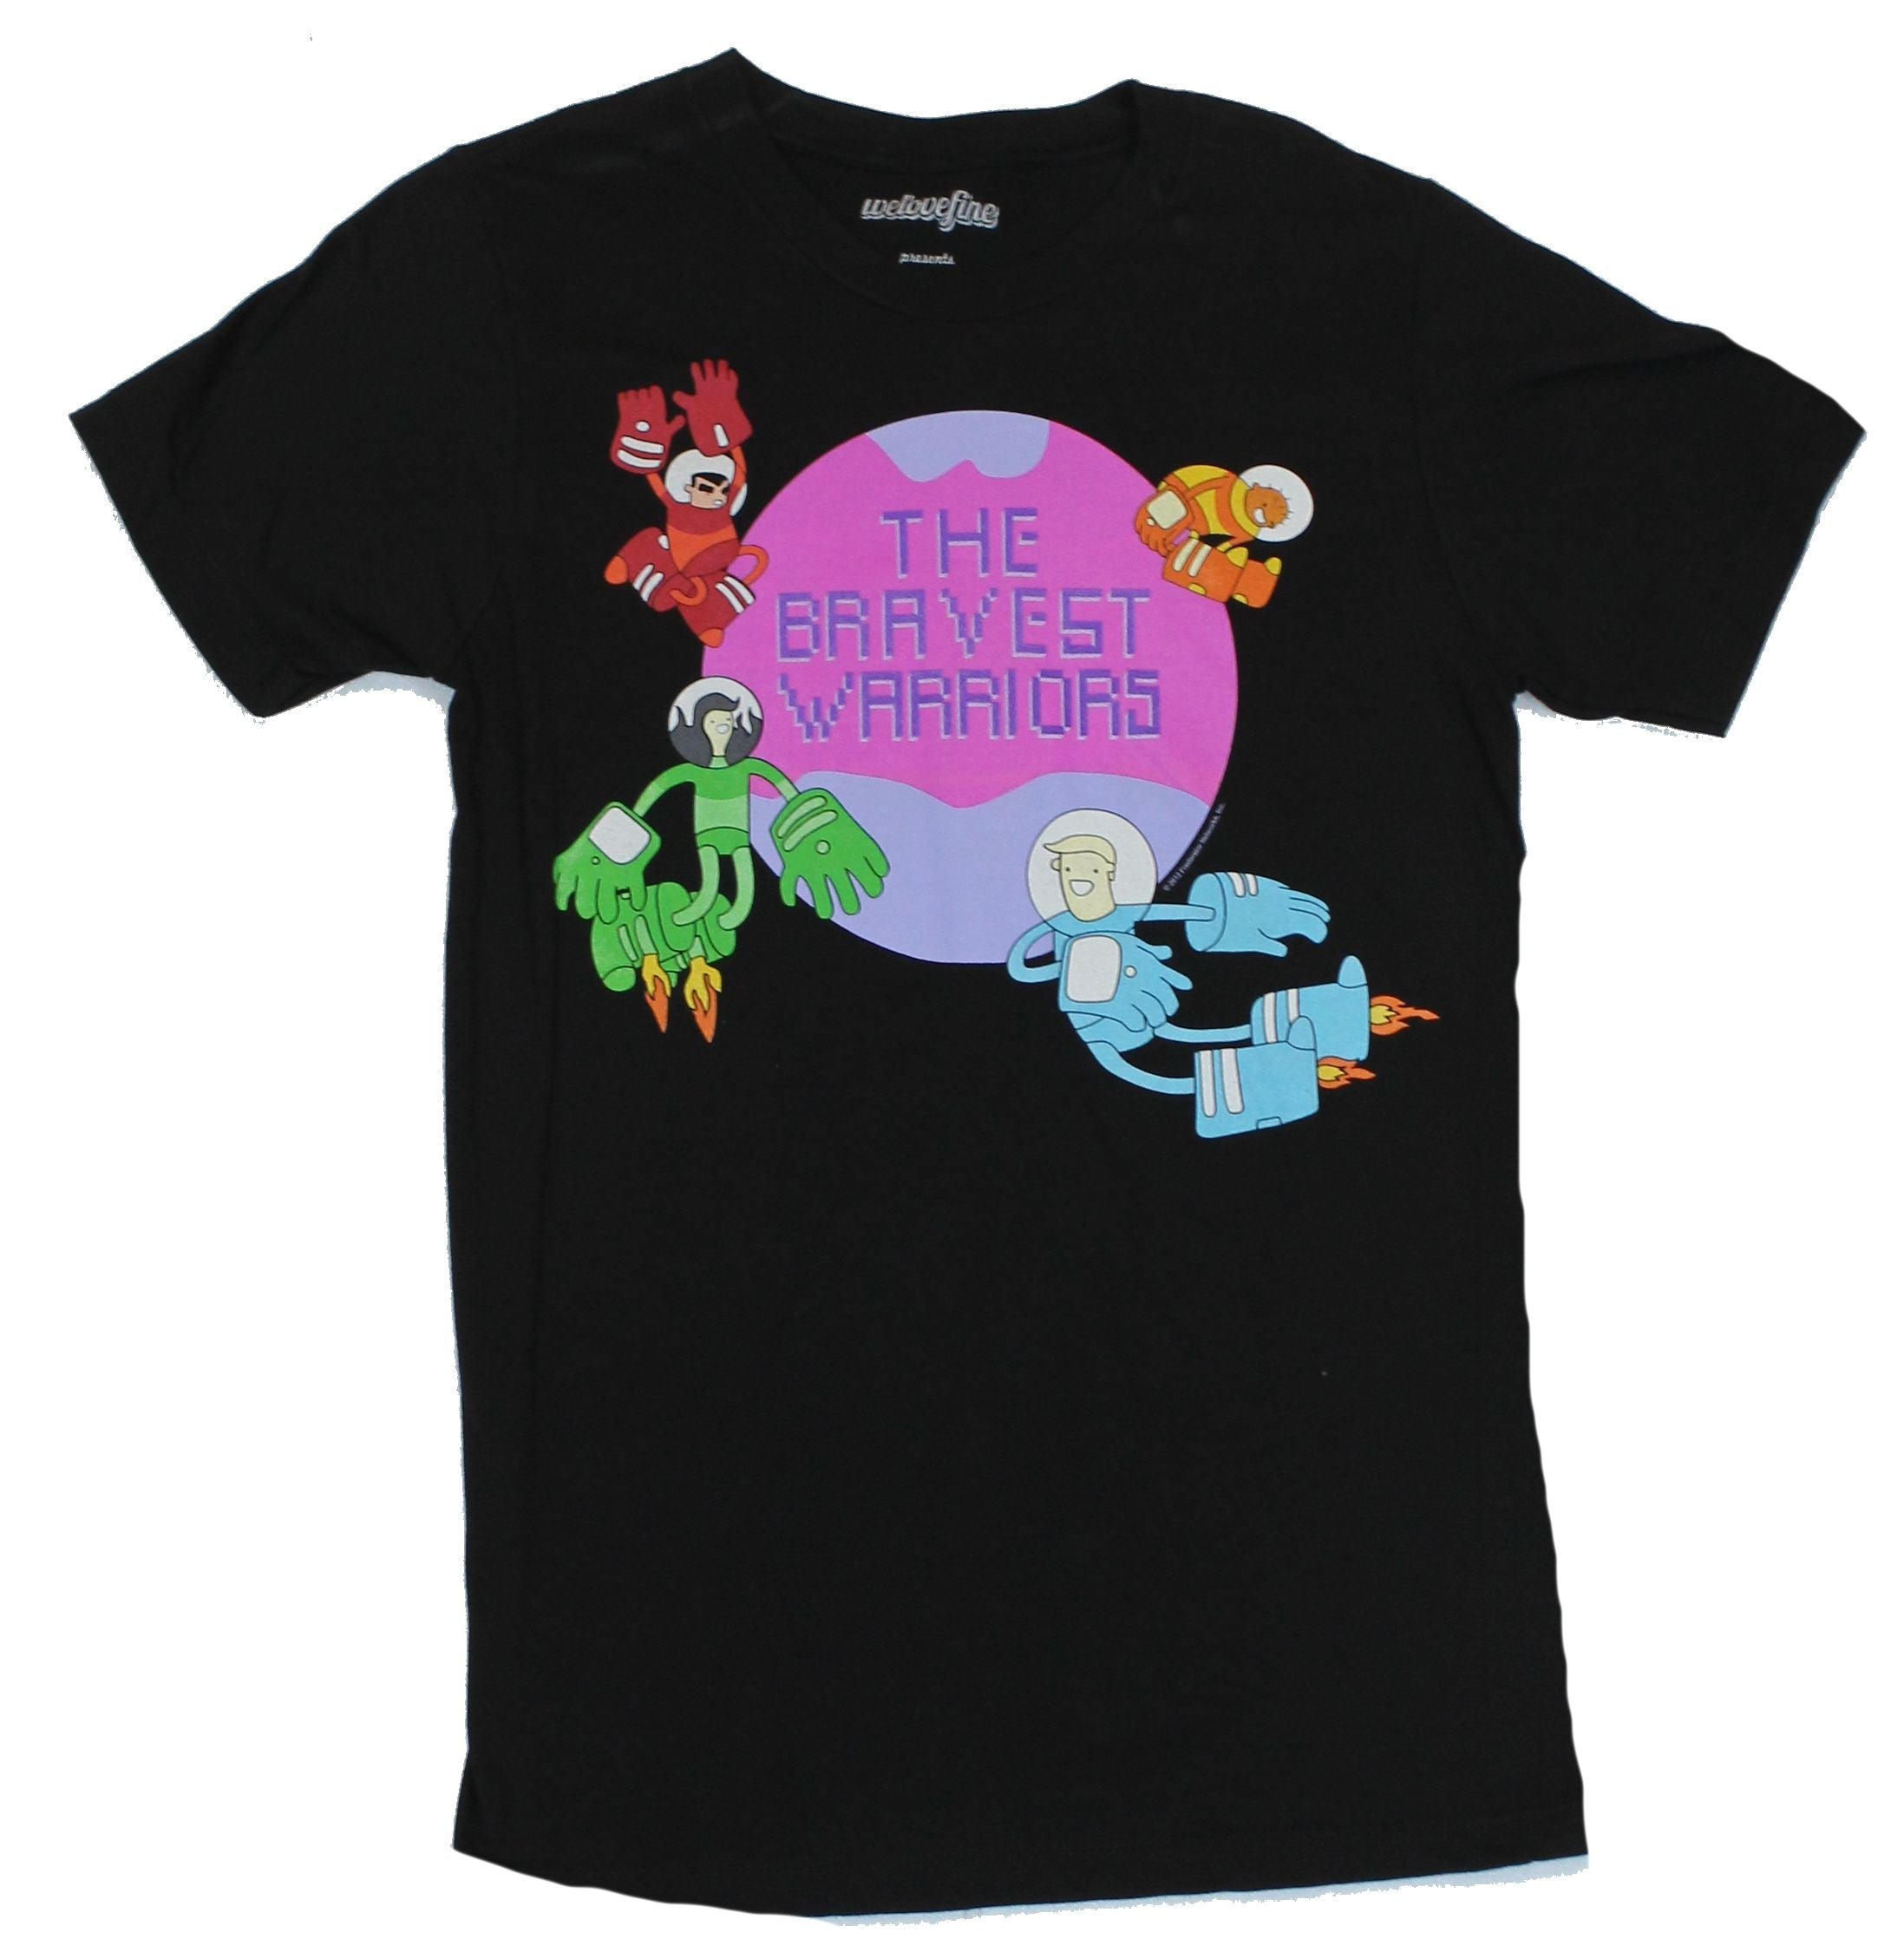 The Bravest Warriors Mens T-Shirt  - Classic Team Planet Logo Image